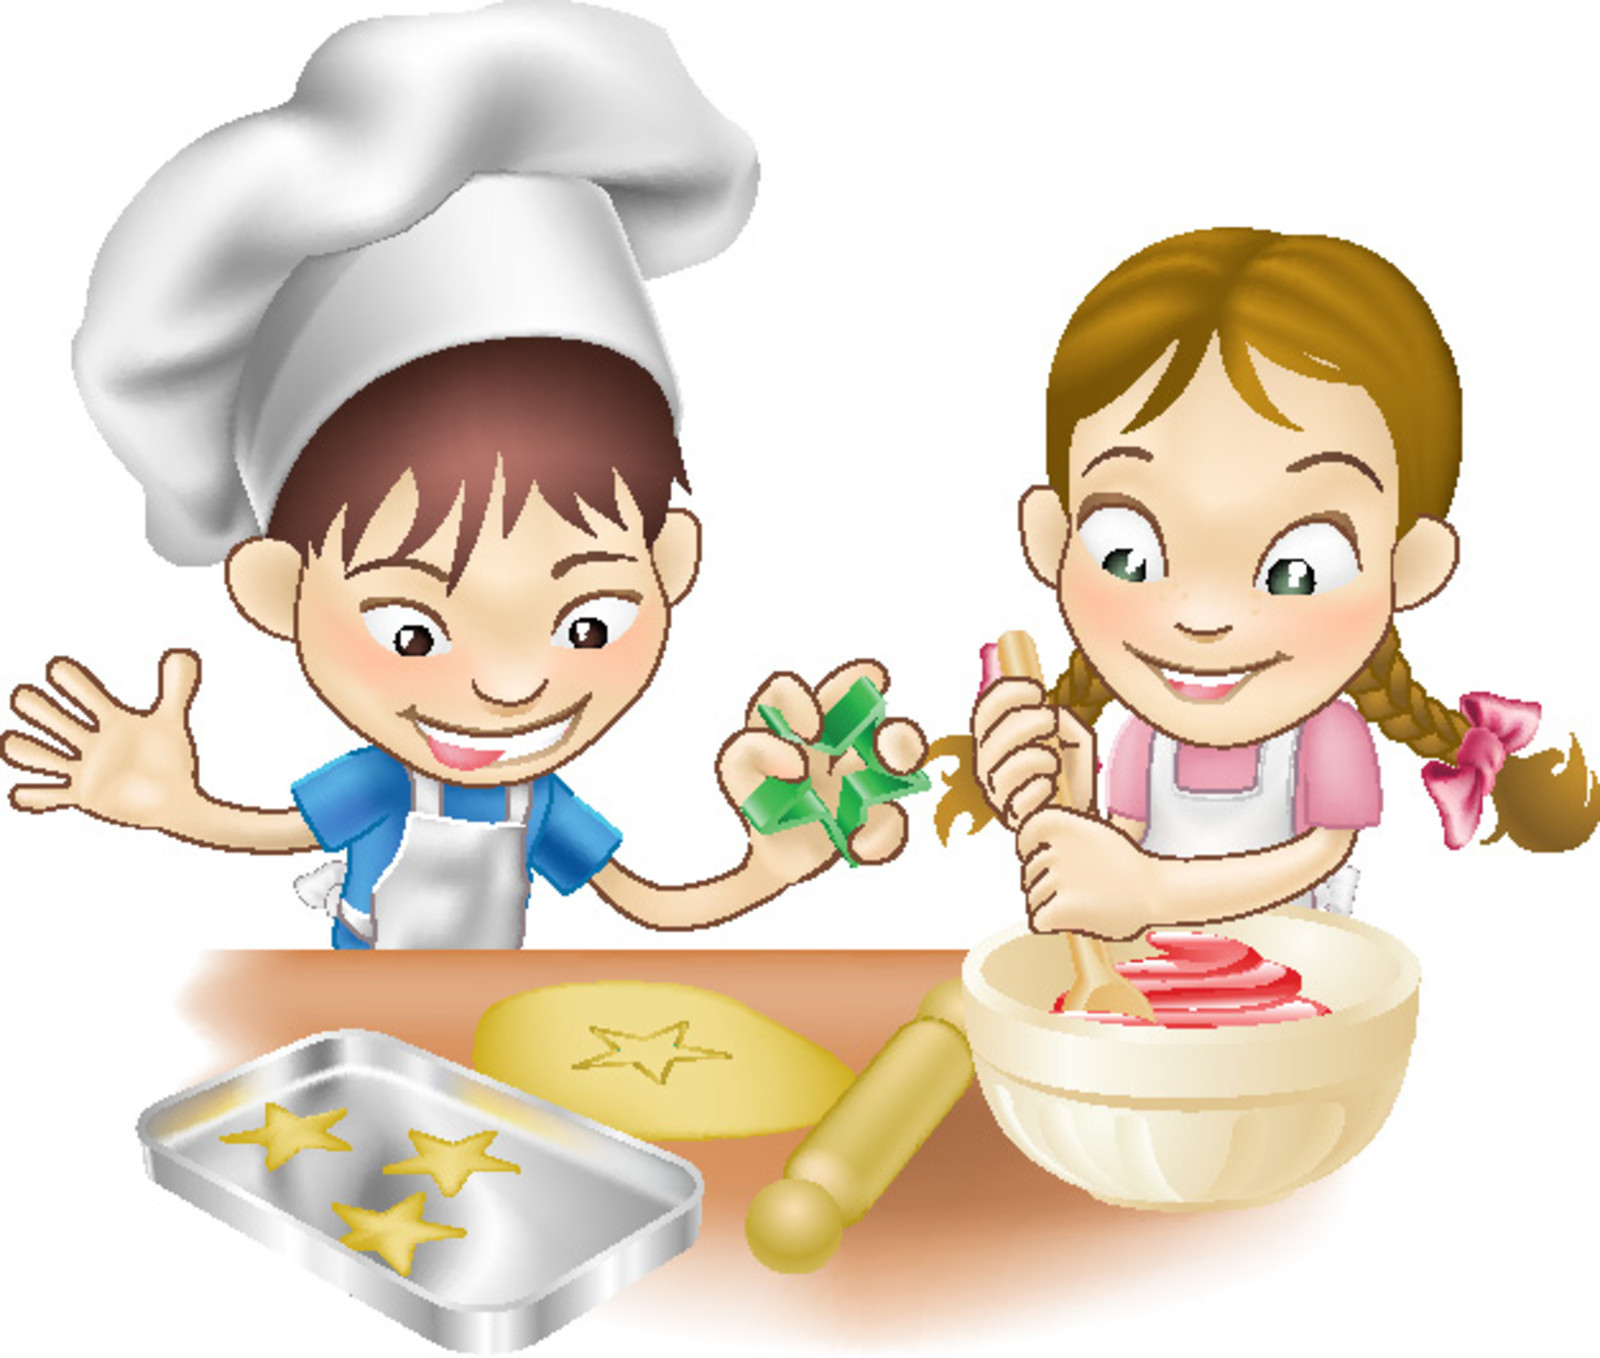 Free cooking clip art clipart clipartcow 2.